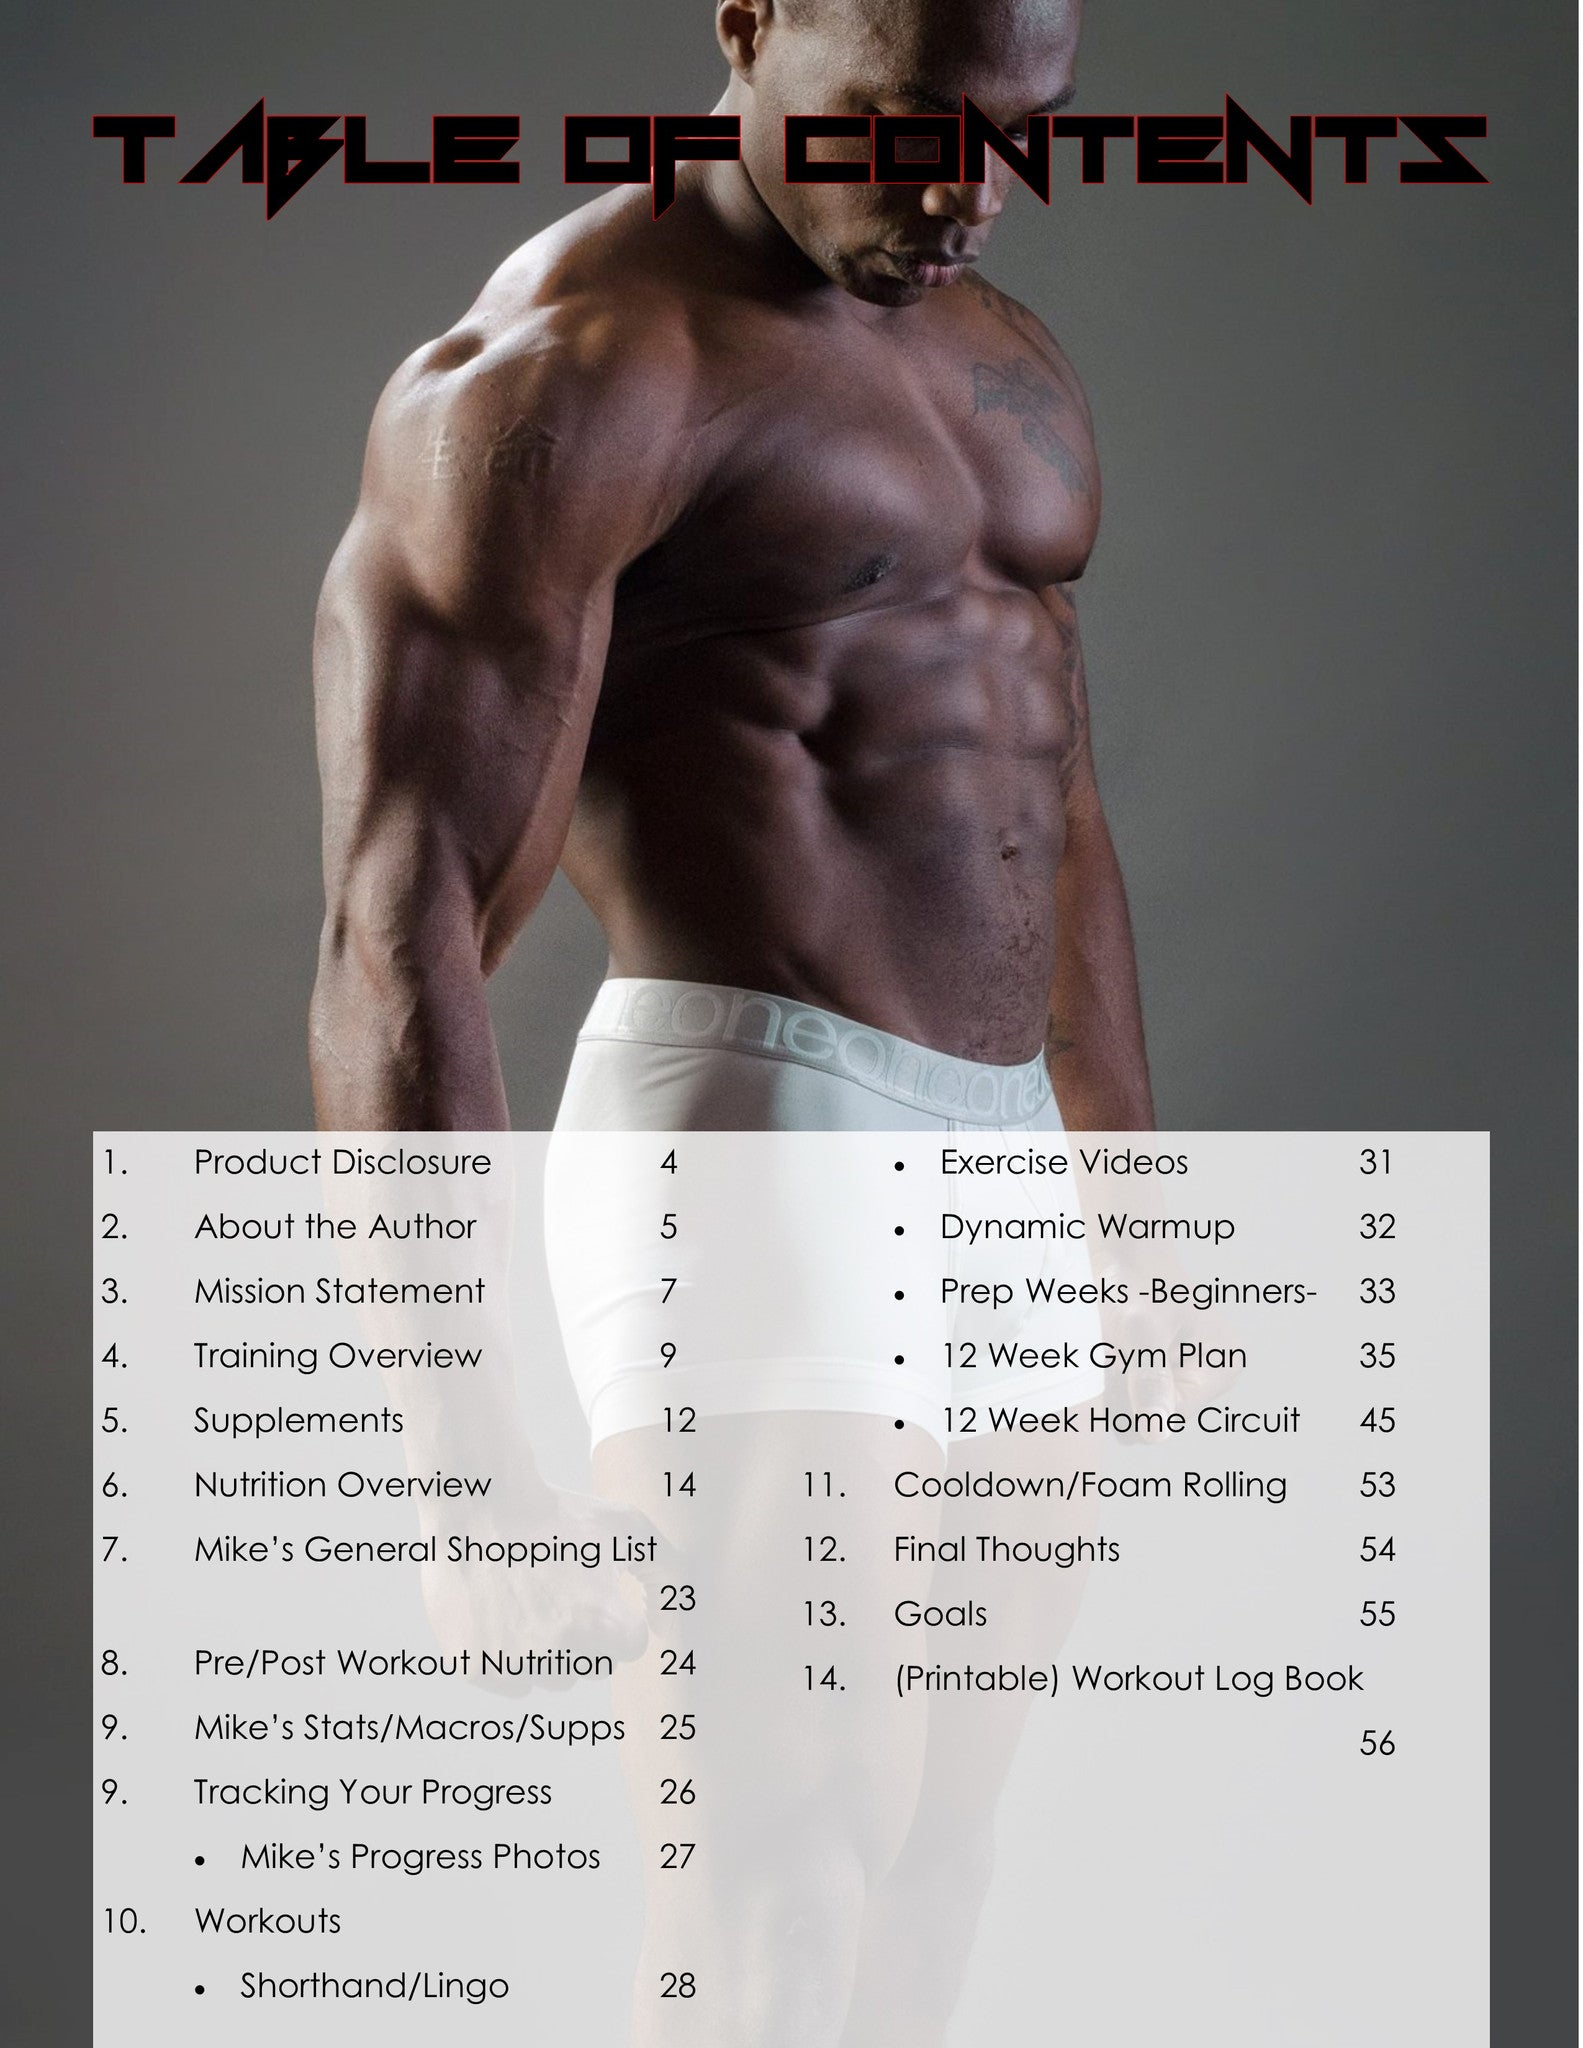 Home Workout Plan For Men the gym hero guidebook: 12 week gym/home workout plan | gym hero